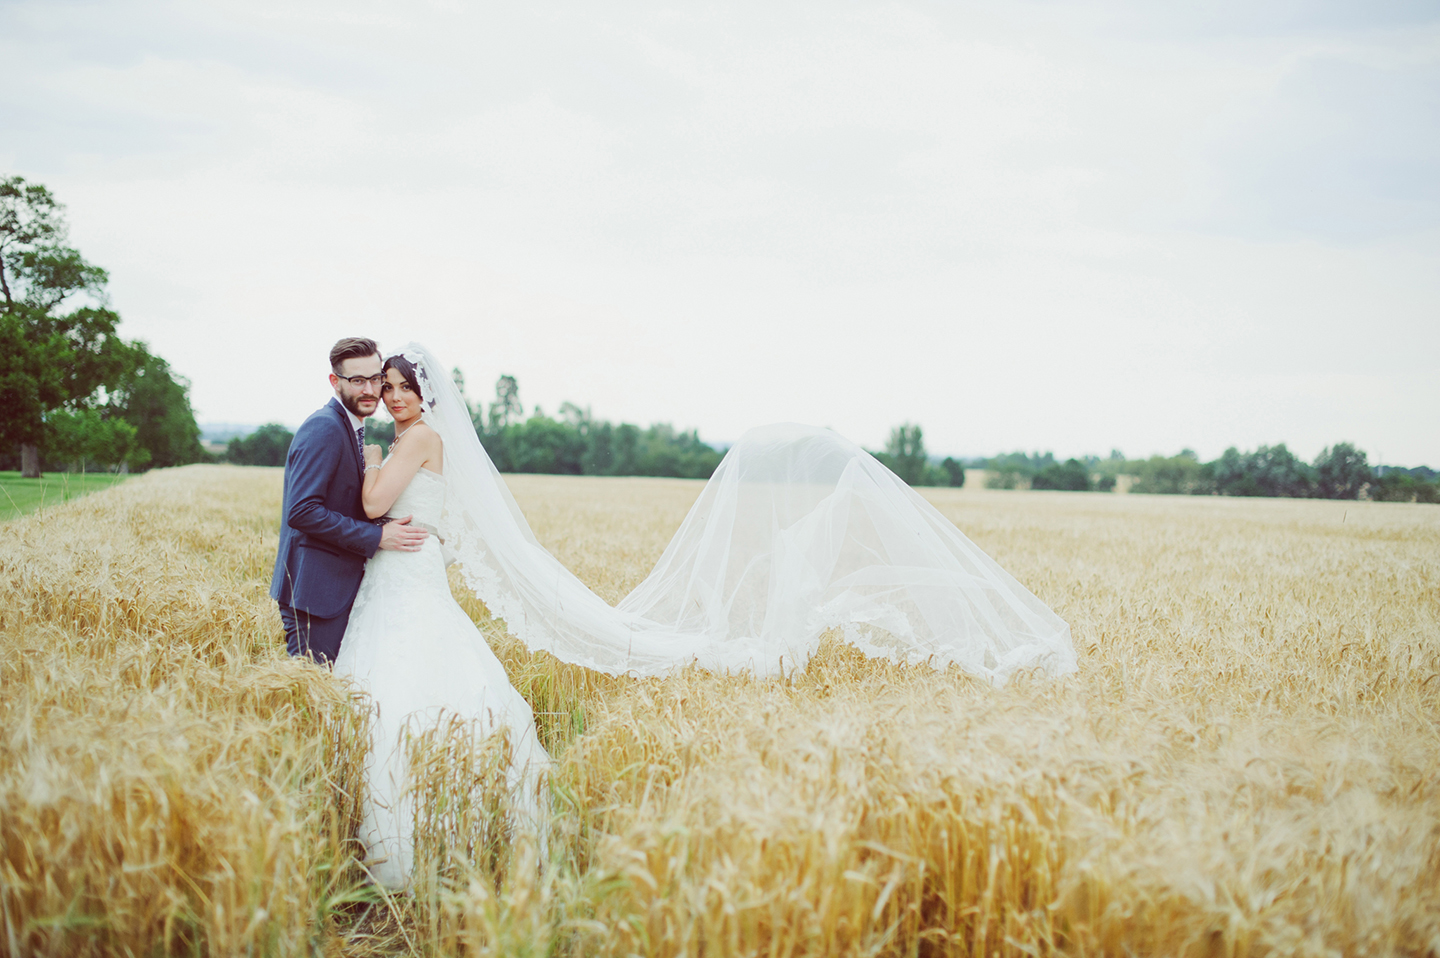 A bride and groom make use of the Cambridgeshire countryside that surrounds this barn wedding venue